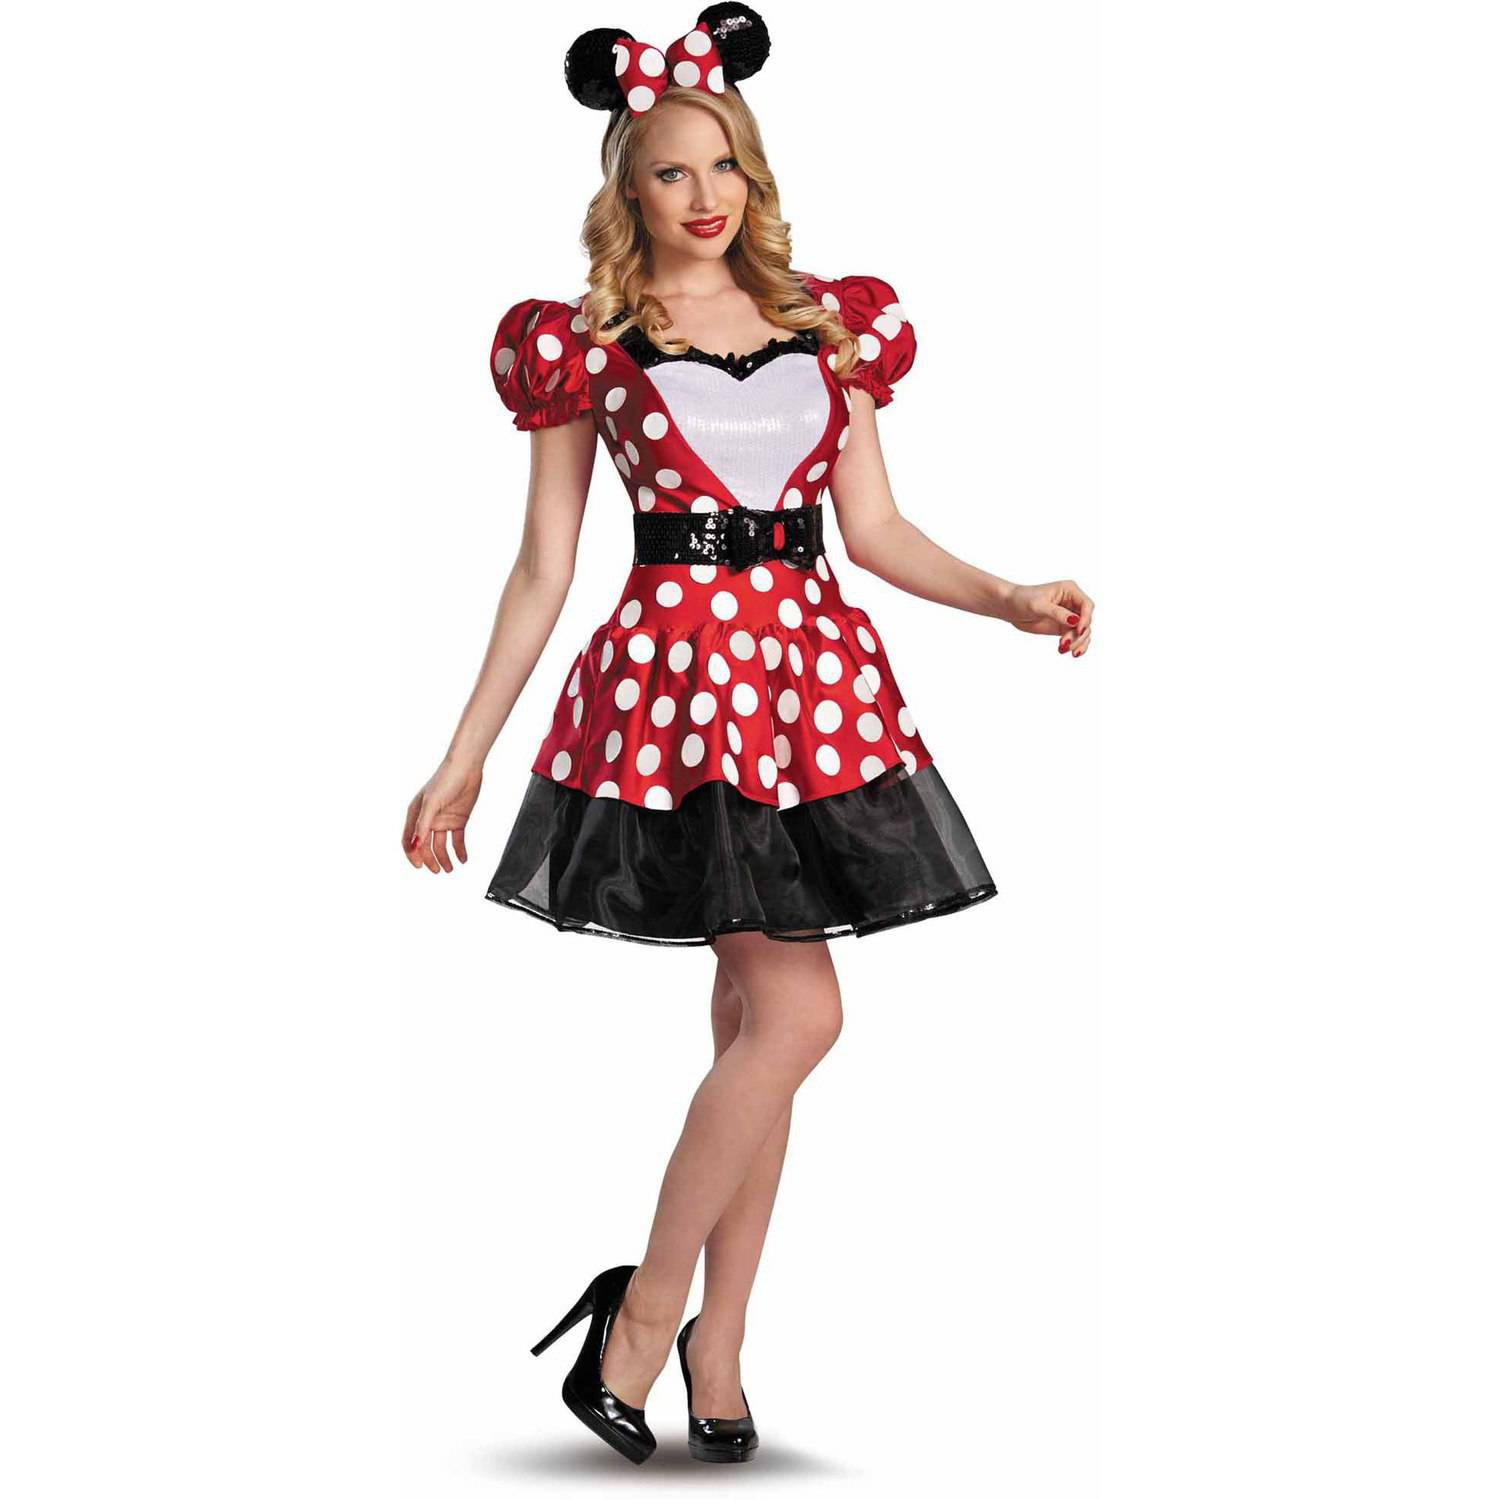 Red Minnie Glam Women's Adult Halloween Costume